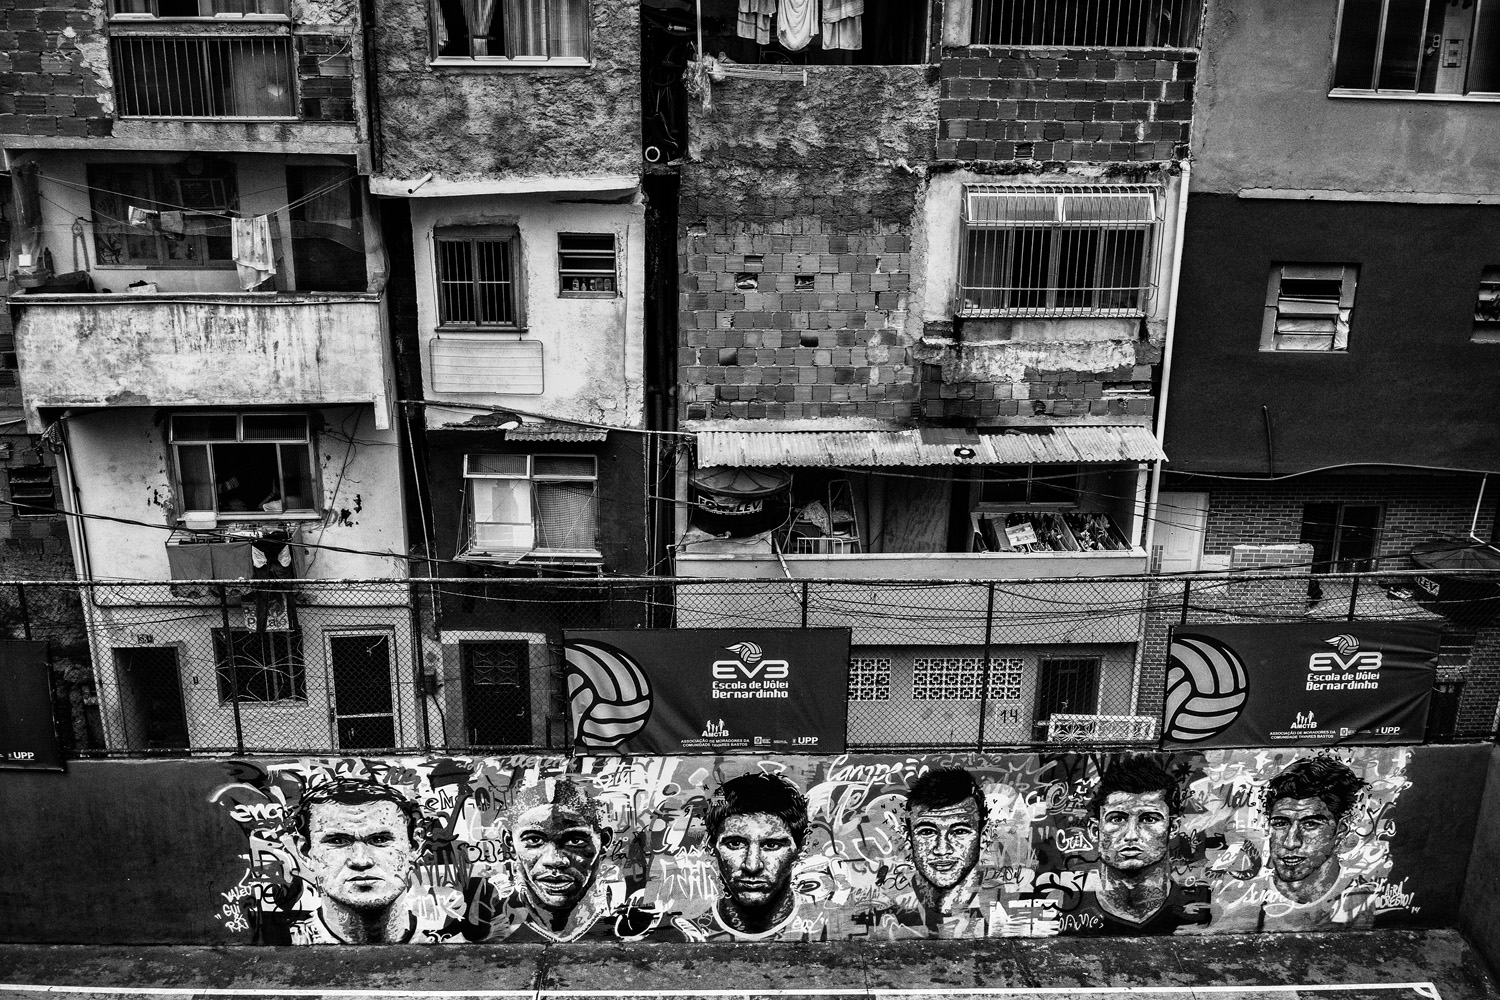 Graffiti of some of the world most famous soccer players including Lionel Messi, Wayne Rooney and Cristiano Ronaldo is seen in the favela of Tavarez Bastos near Rio de Janeiro's downtown.